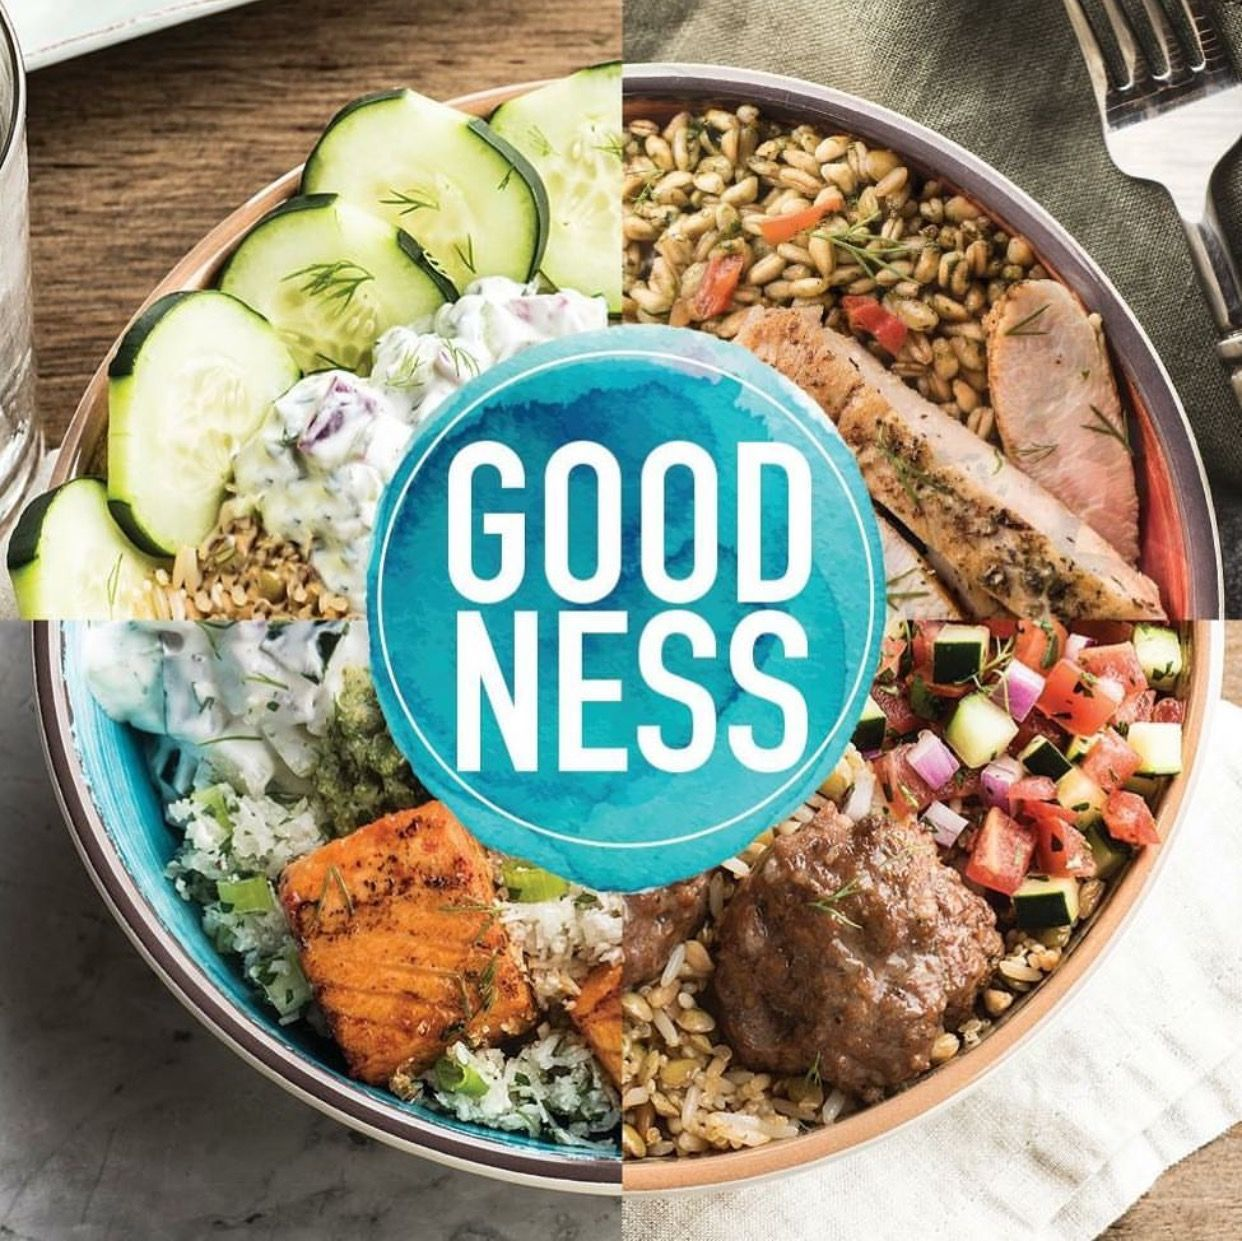 Zoes Kitchen: ZK 30 Day Lifestyle Plan   Food and Dining   Pinterest ...